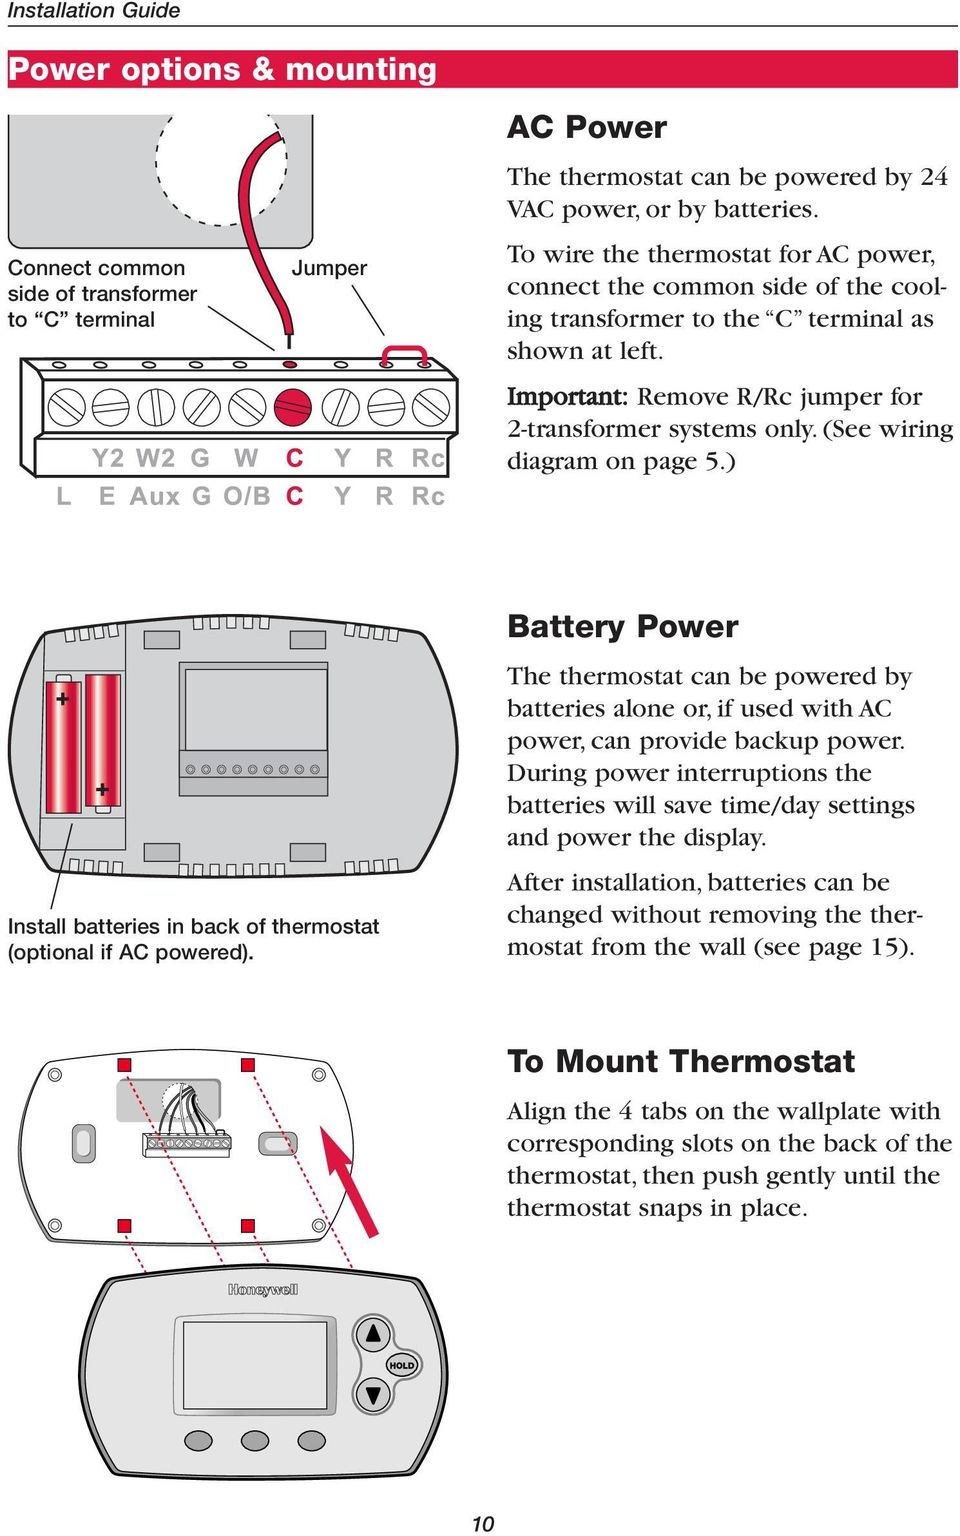 medium resolution of  see wiring diagram on page 5 install batteries in back of thermostat